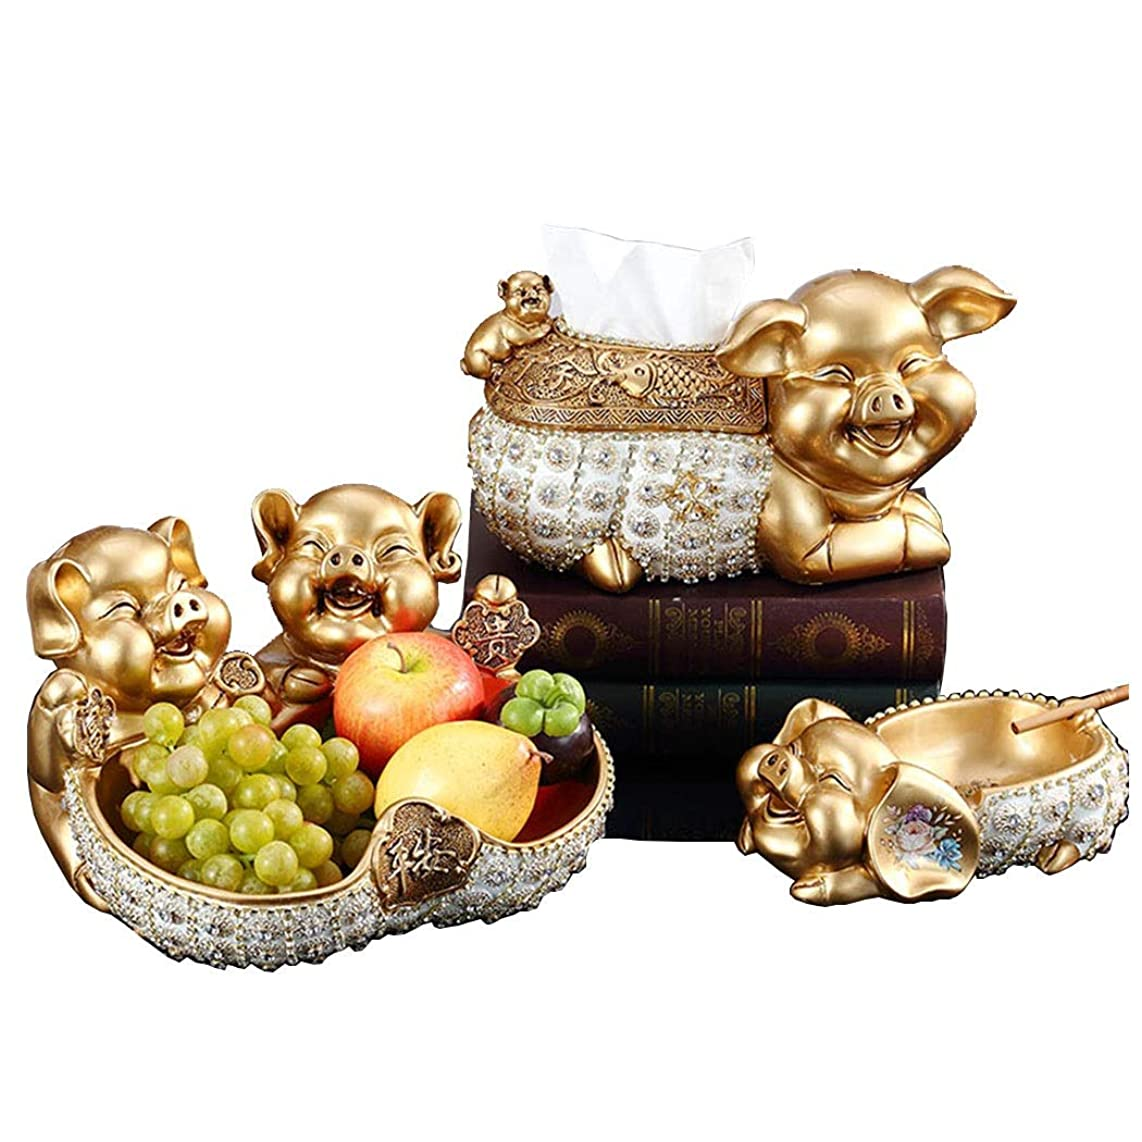 HONGNA Golden Pig Lucky Decoration Living Room Porch Fu Pig Creative Household Resin Multi-Purpose Tissue Box Housewarming Opening Gift (Towel Box Fruit Bowl Ashtray) (Color : Gold)